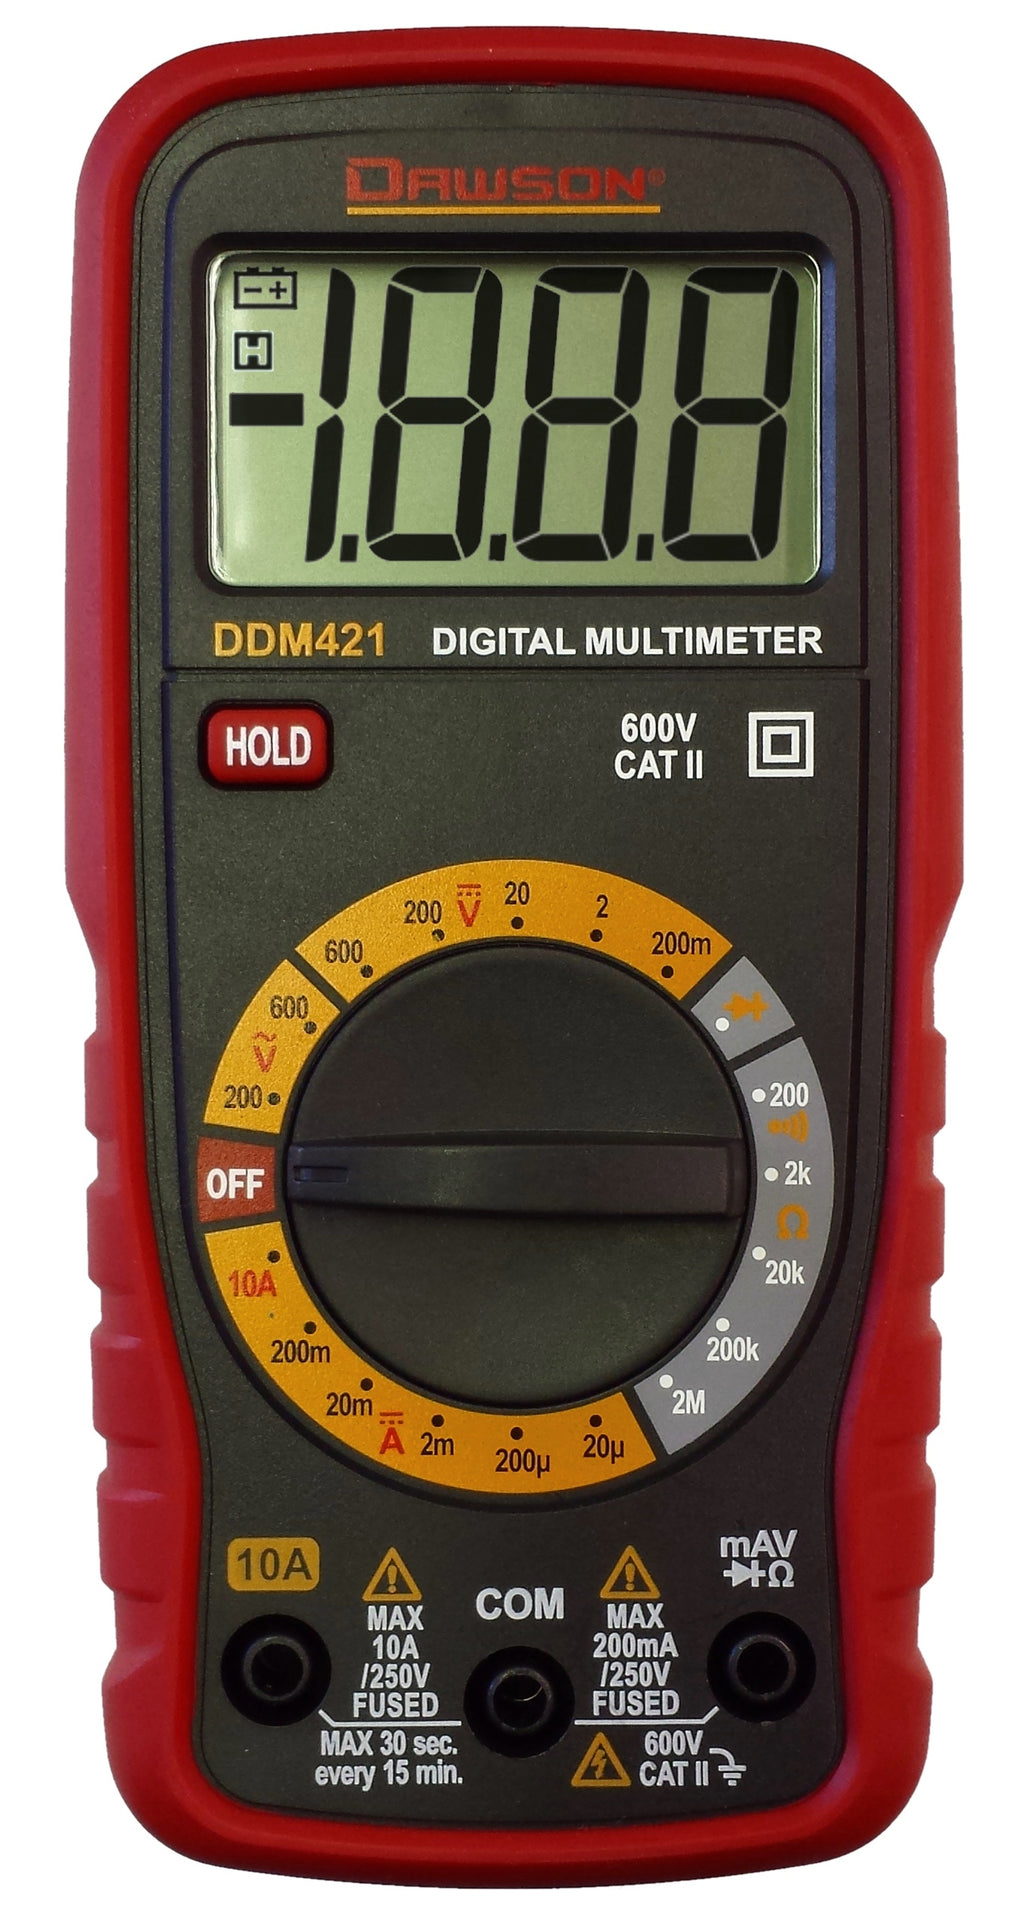 Compact Digital Multimeters -  DDM421